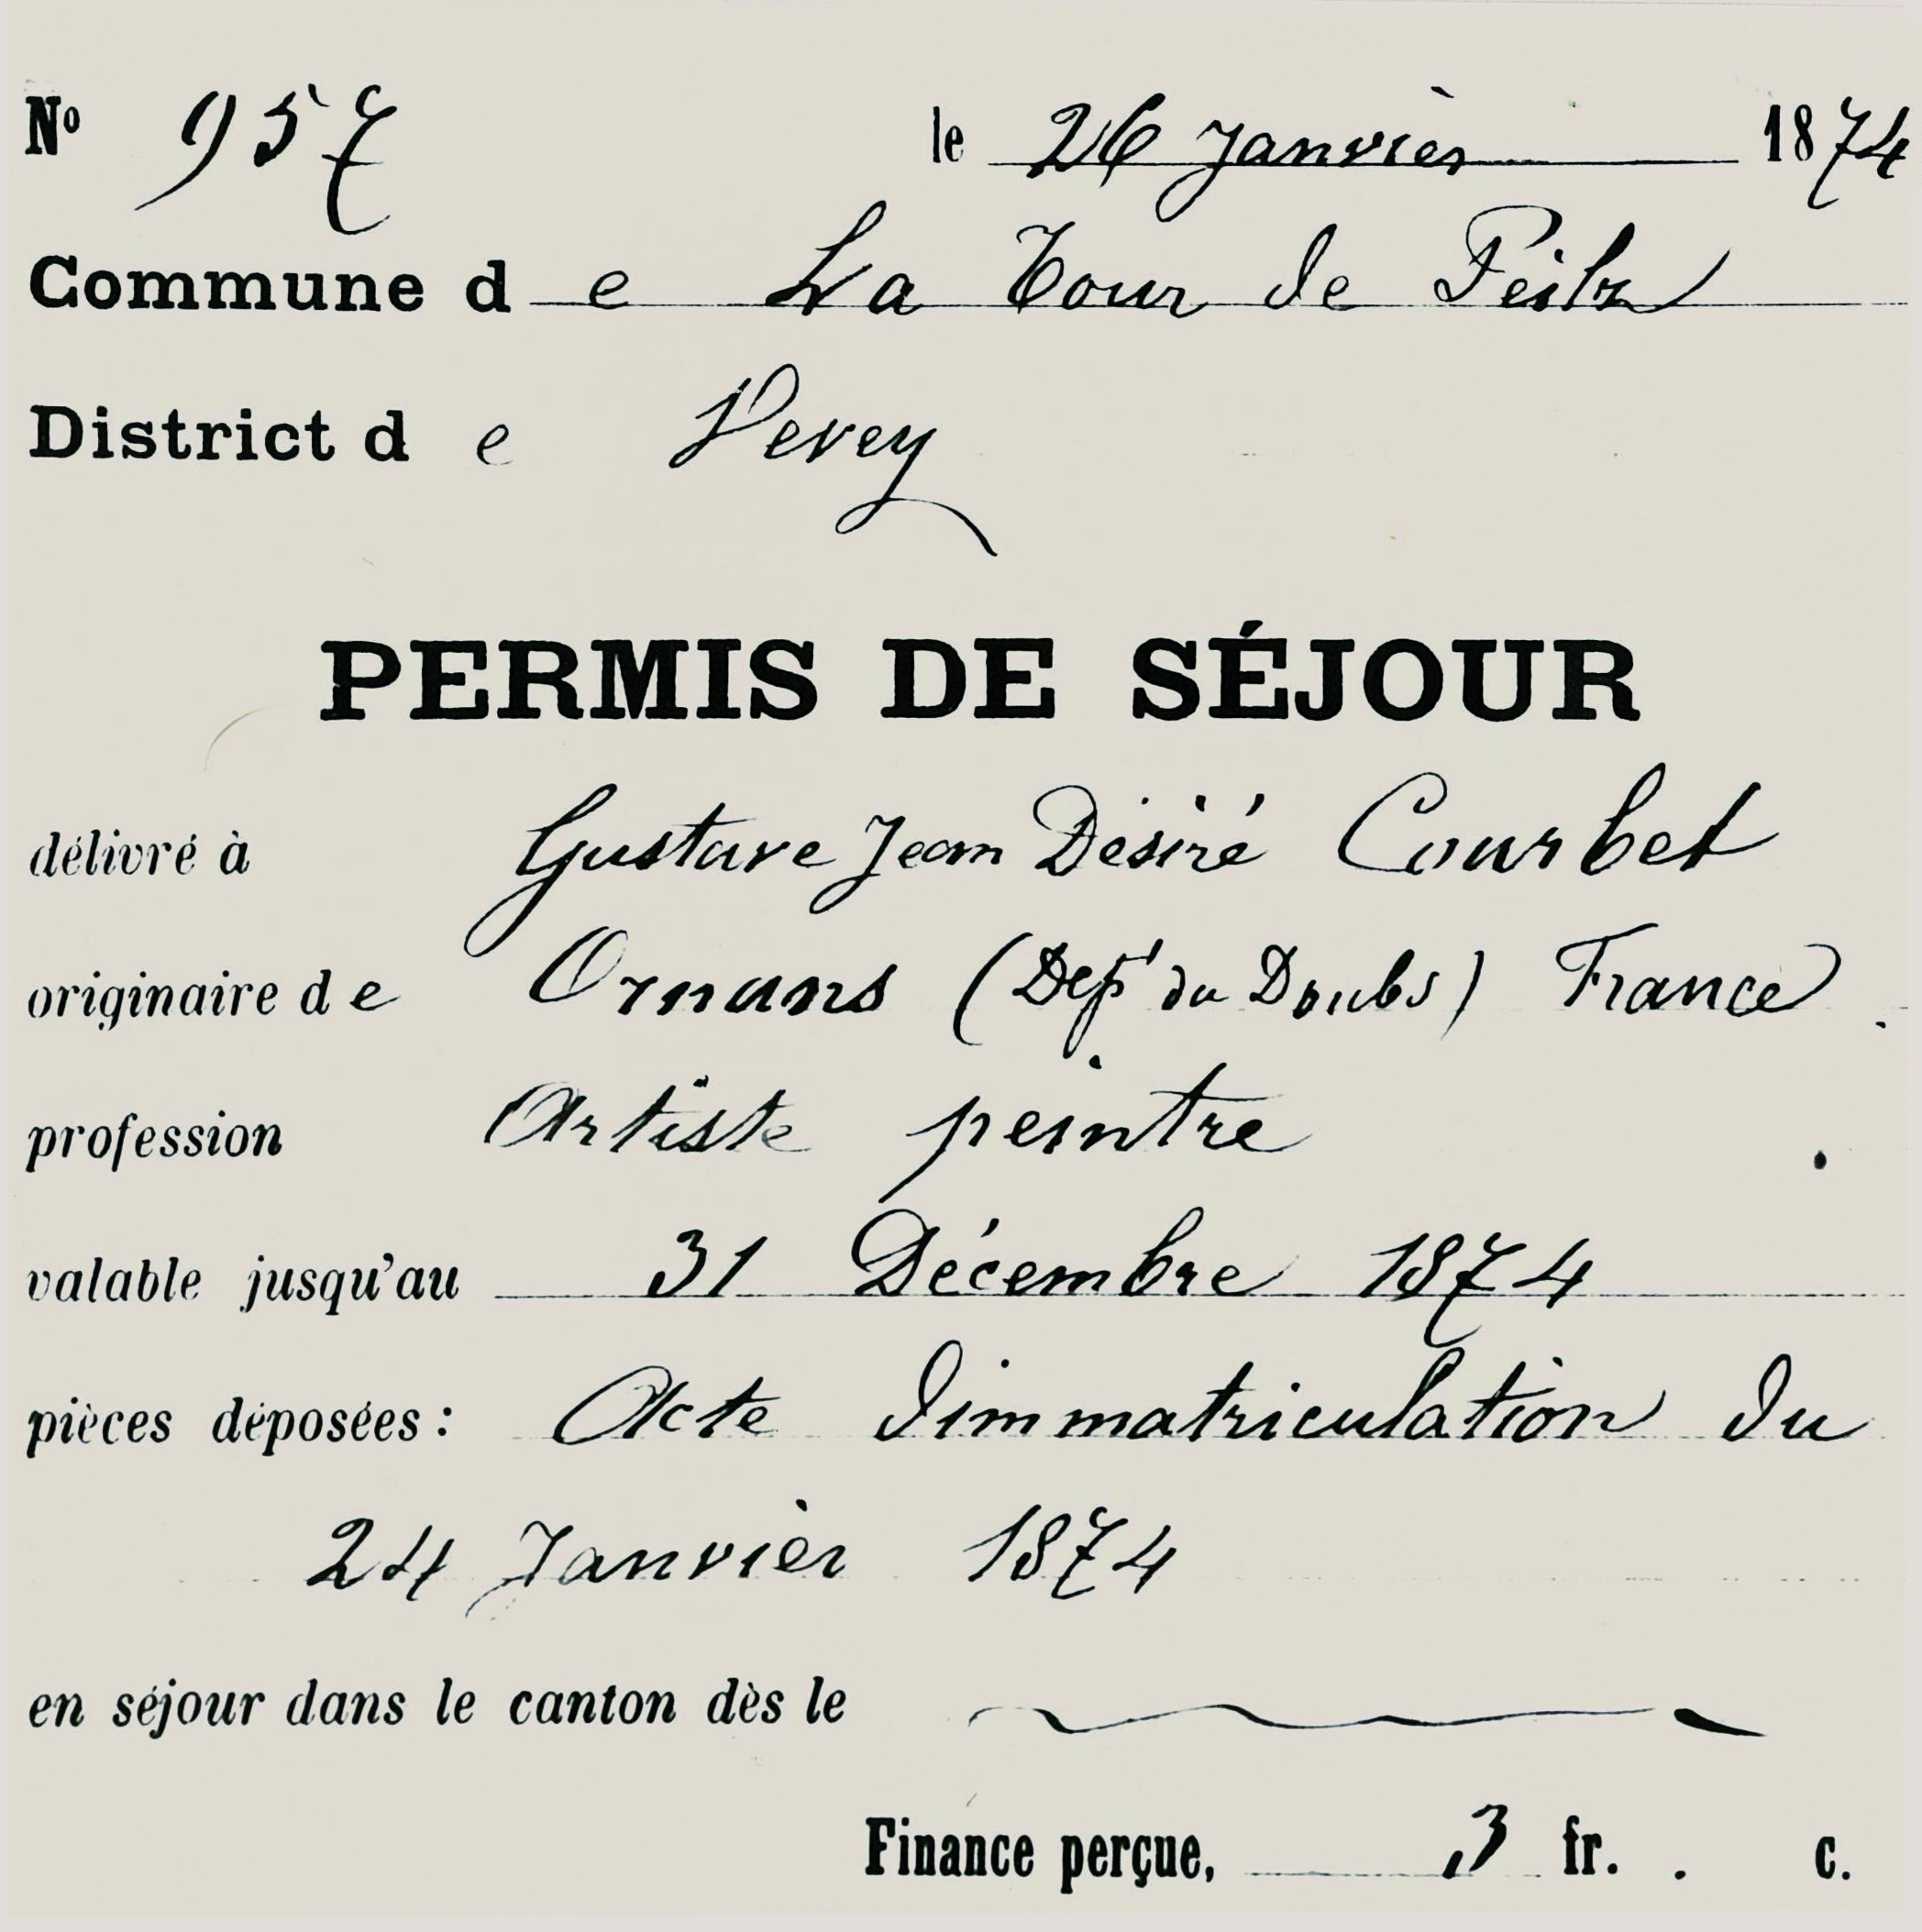 Resident permit granted to Gustave Courbet from the town of La Tour-de-Peilz on 26th January 1874. Municipal records